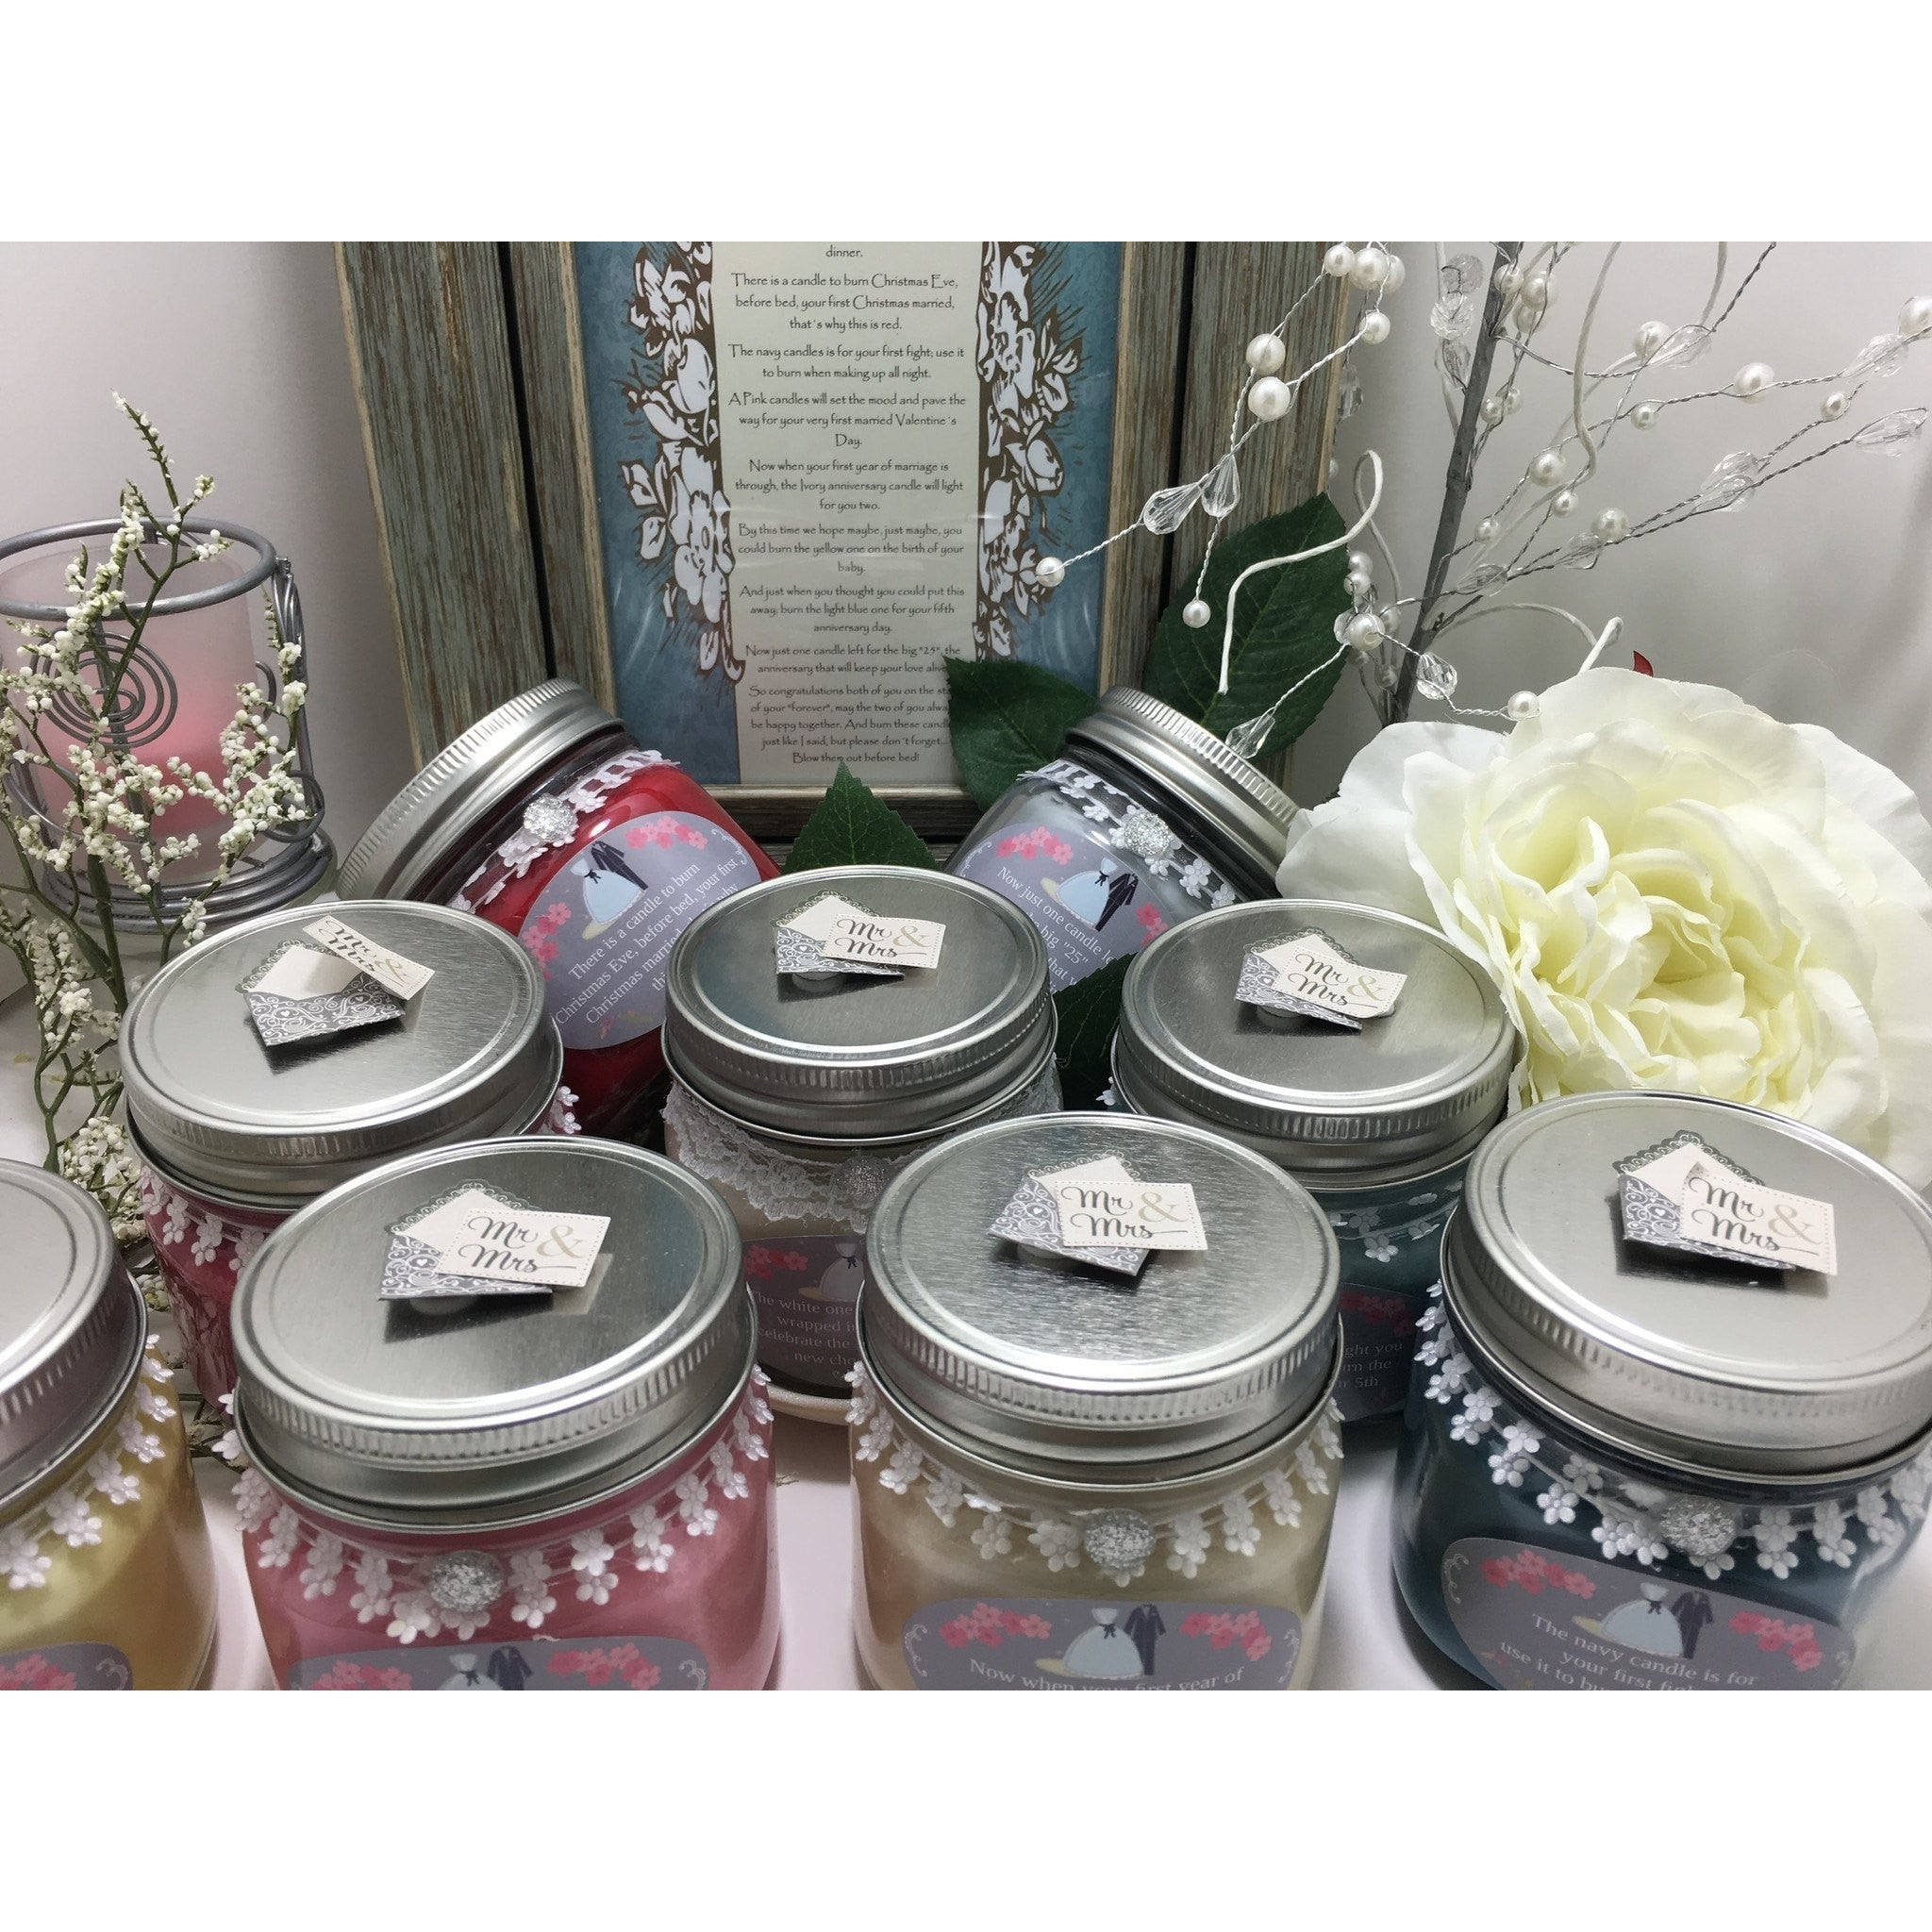 Wedding & Shower Party Natural Hand Poured Soy Candles & Melts -  - Bella-Mia Naturals All Natural Soy Candles & Lip Balms - 24